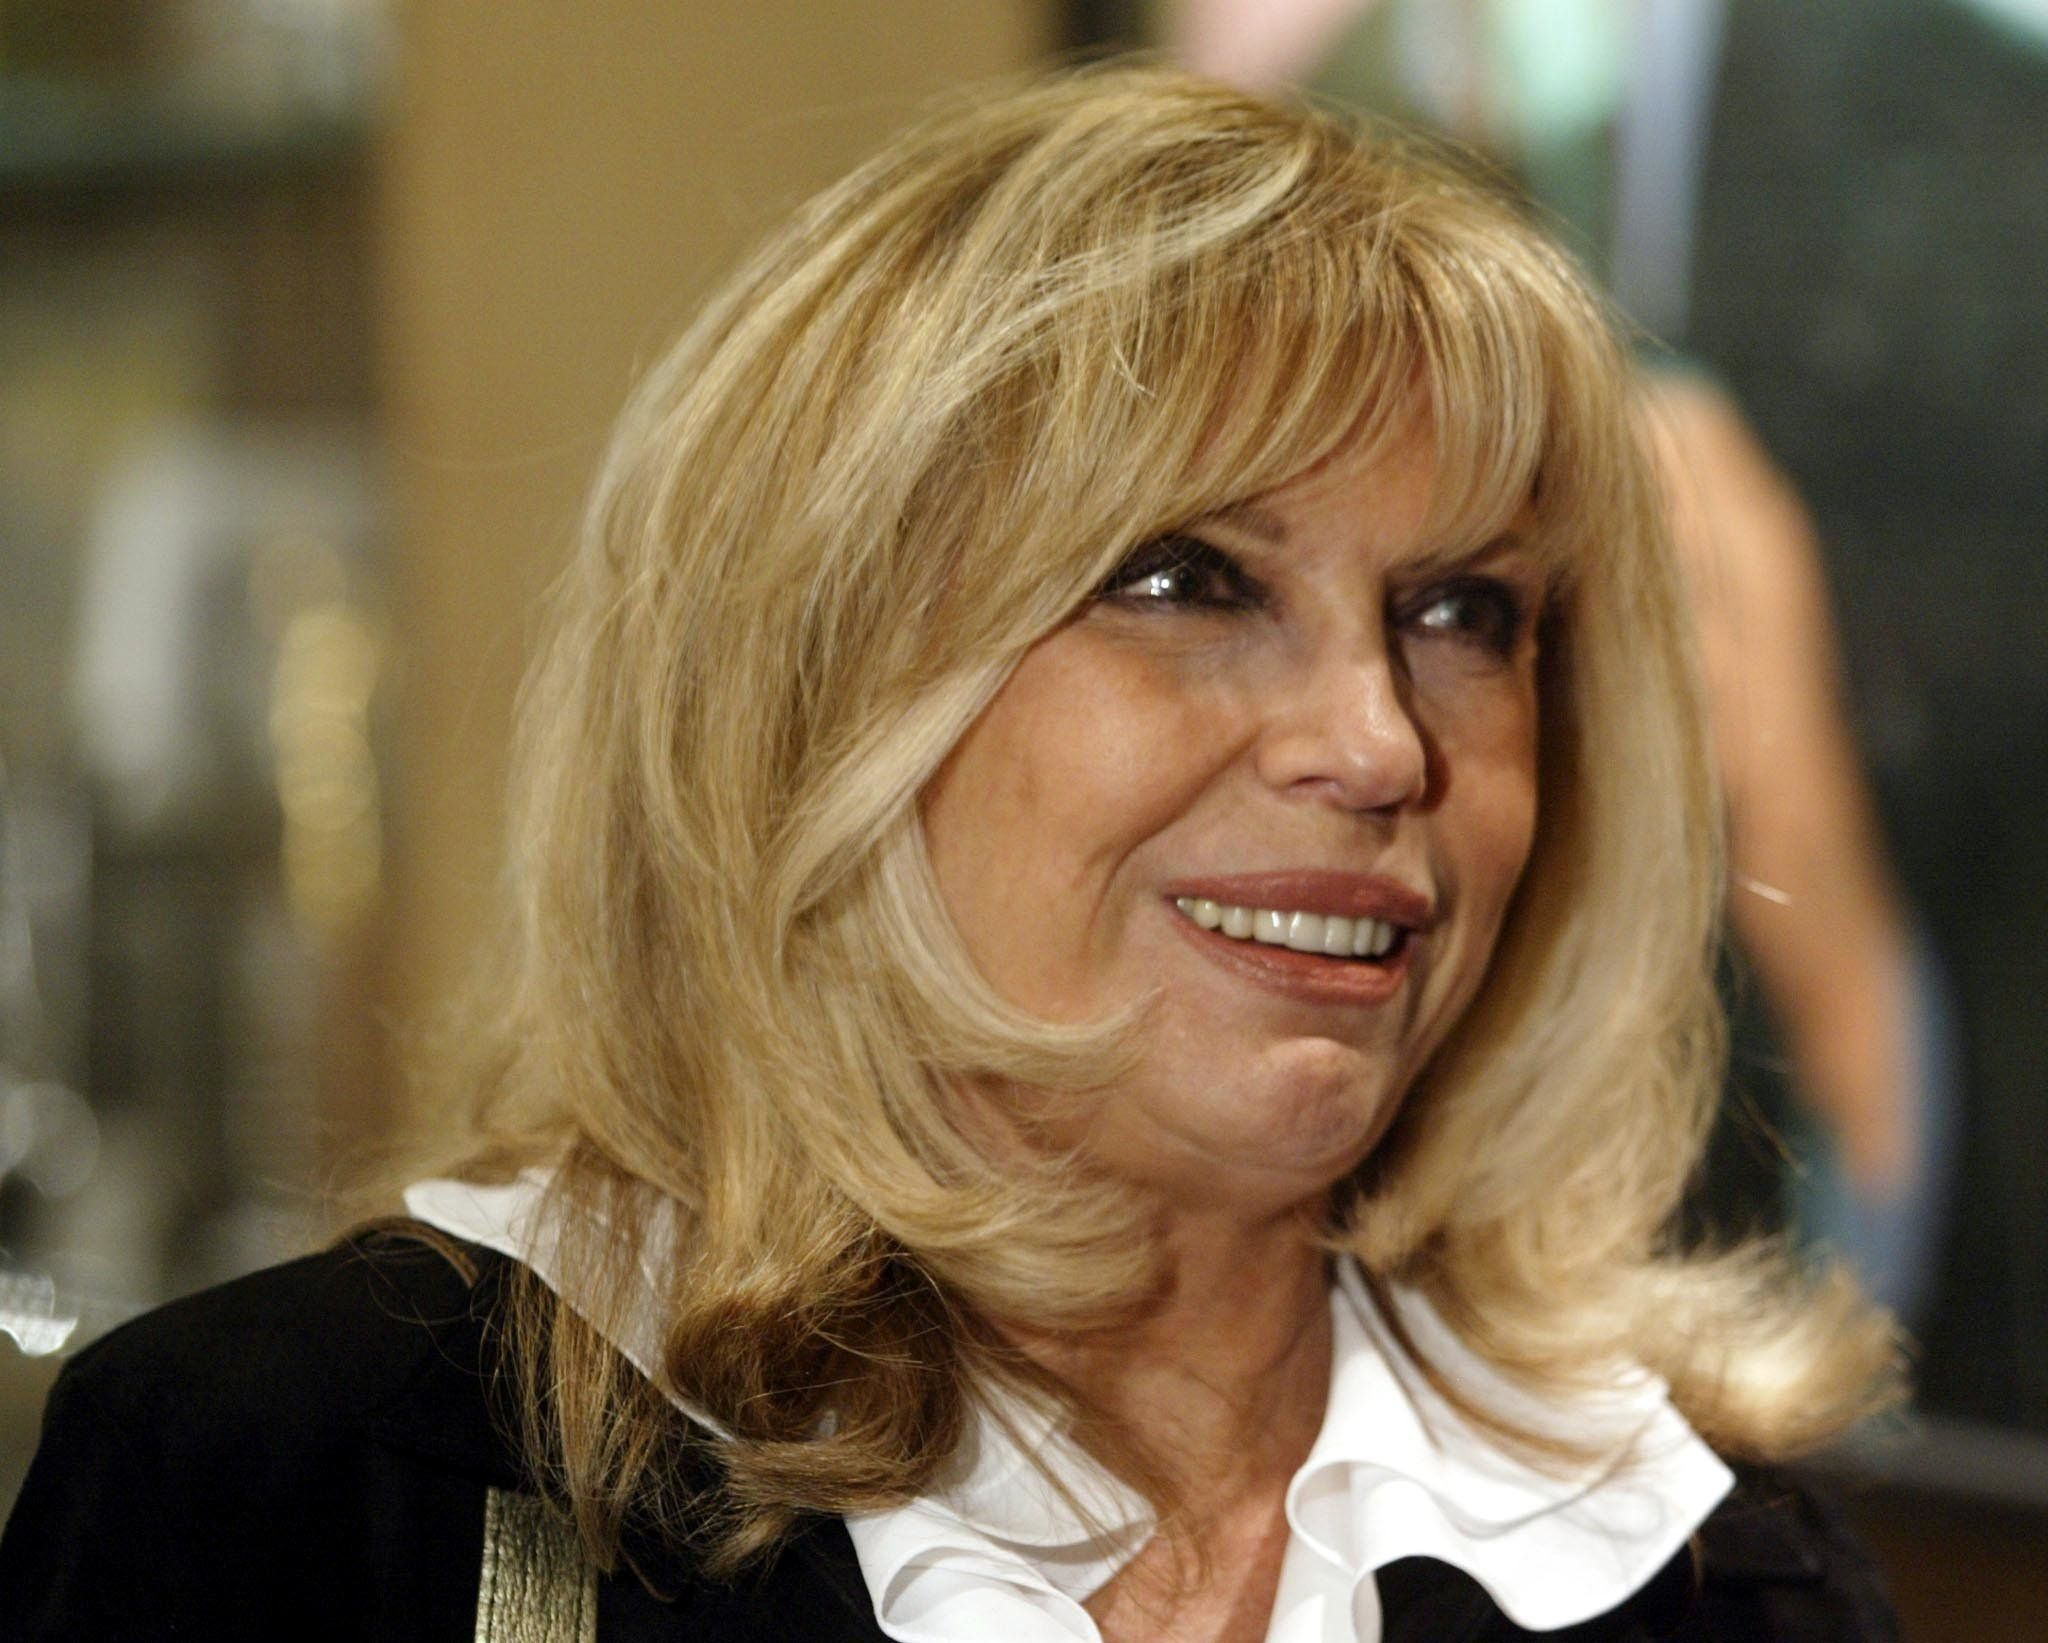 Nancy Sinatra Destroys Donald Trump With Her Kickass